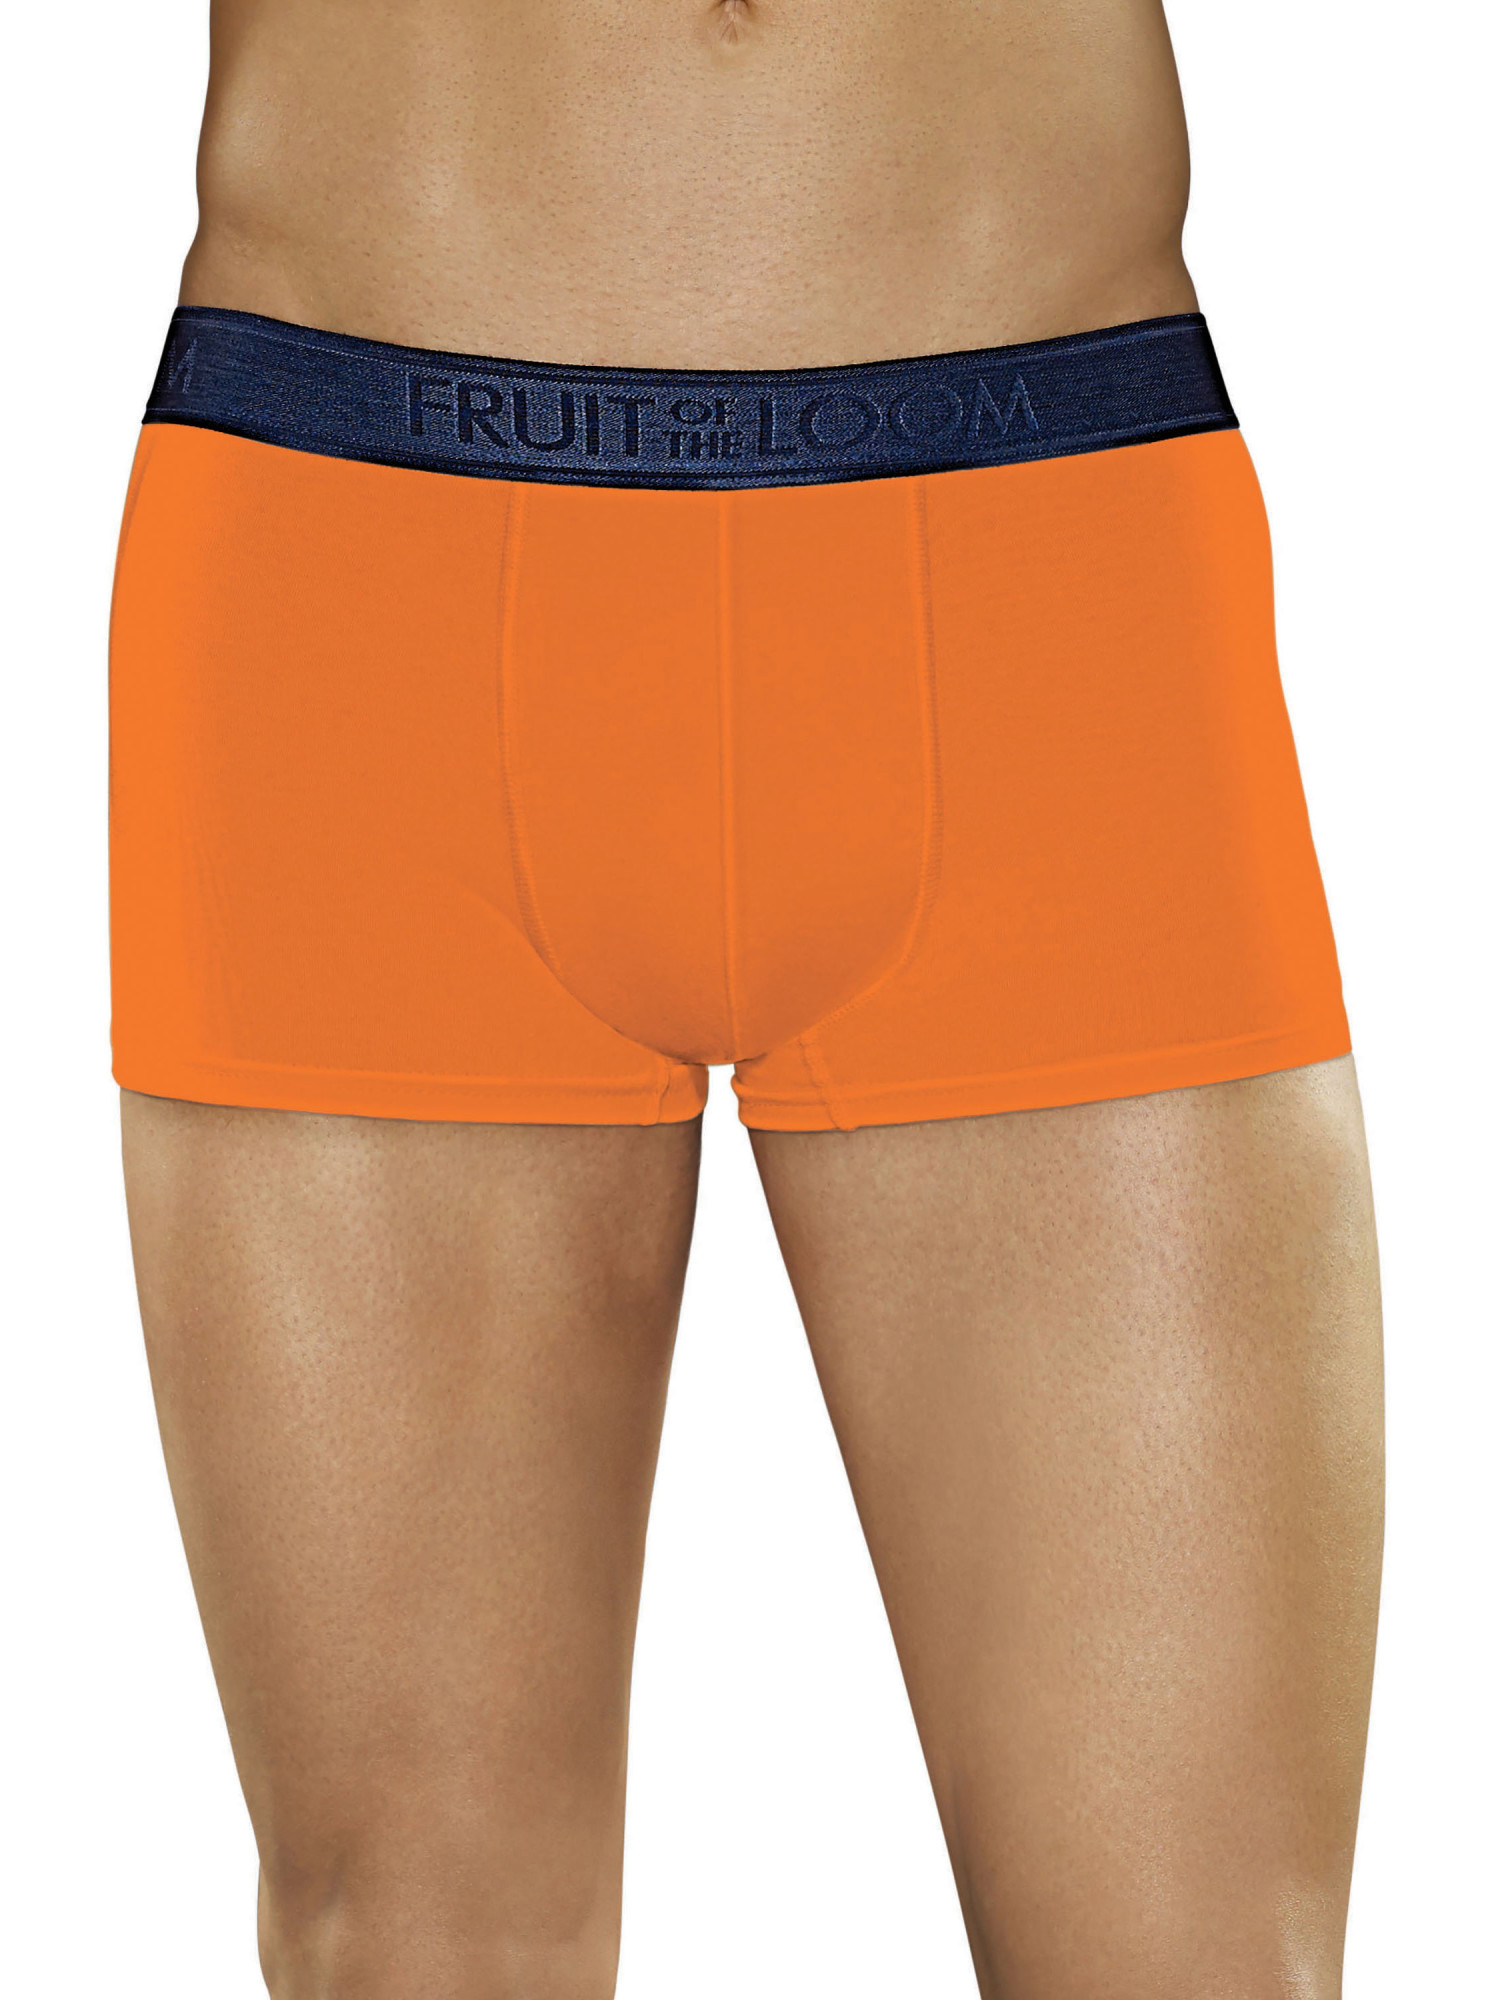 Men's Low Rise Cotton Stretch Trunk, 2 Pack